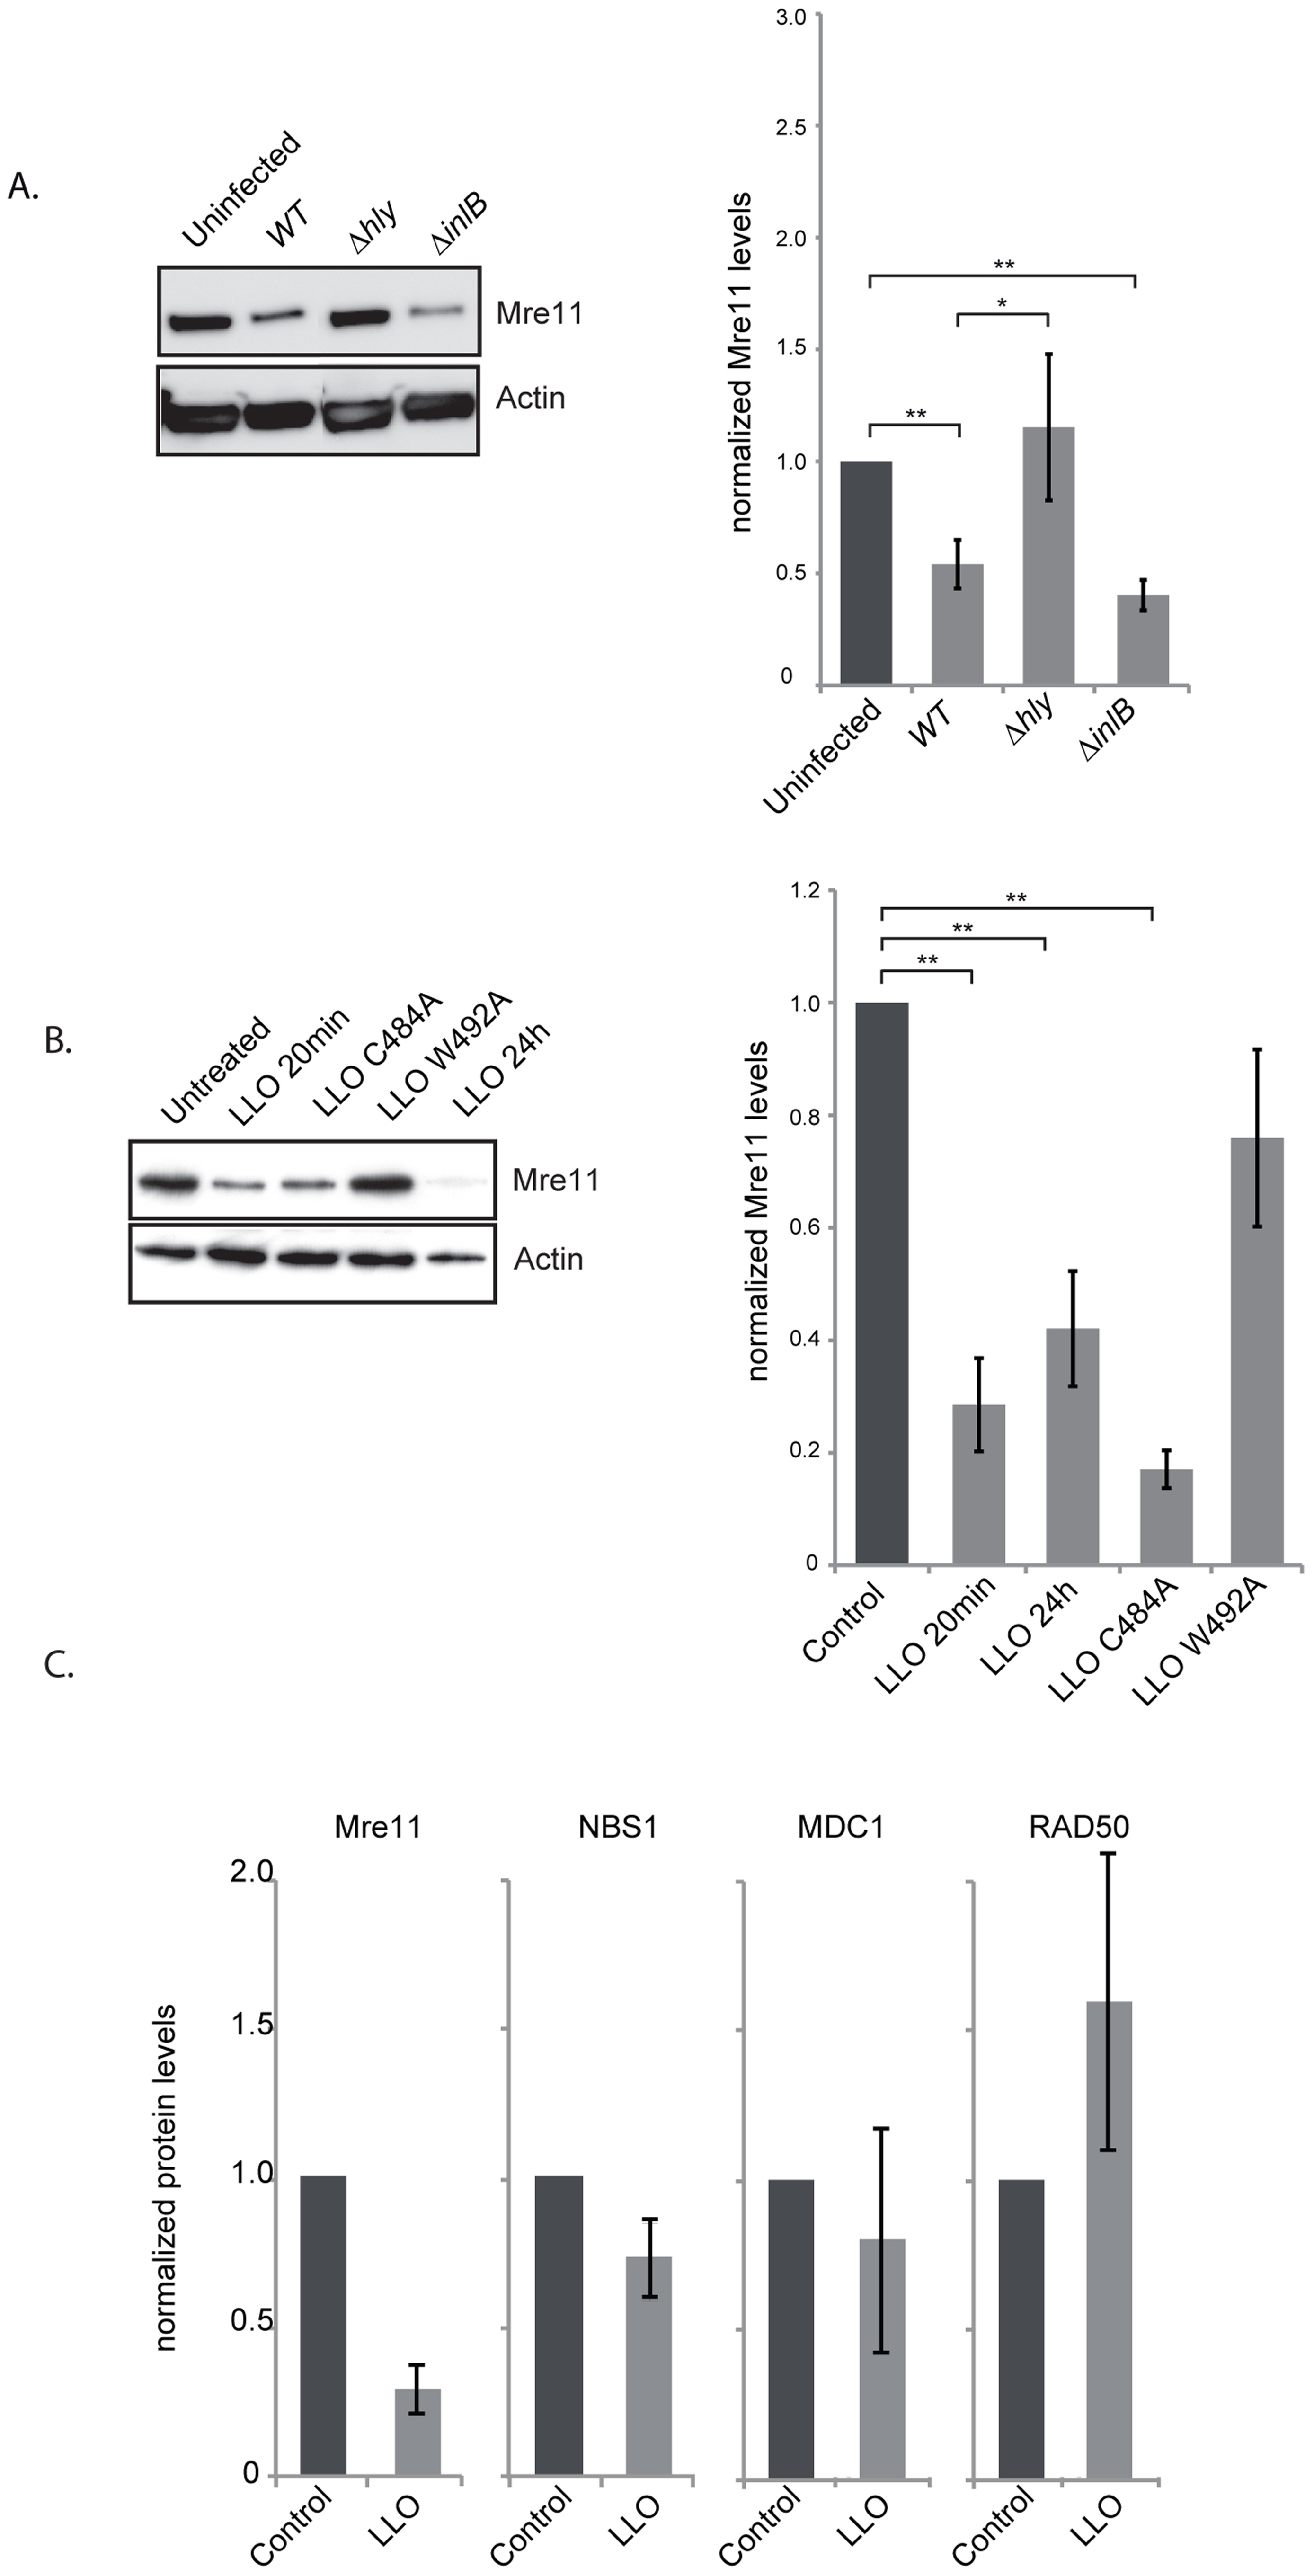 LLO induces a decrease in Mre11 protein levels.